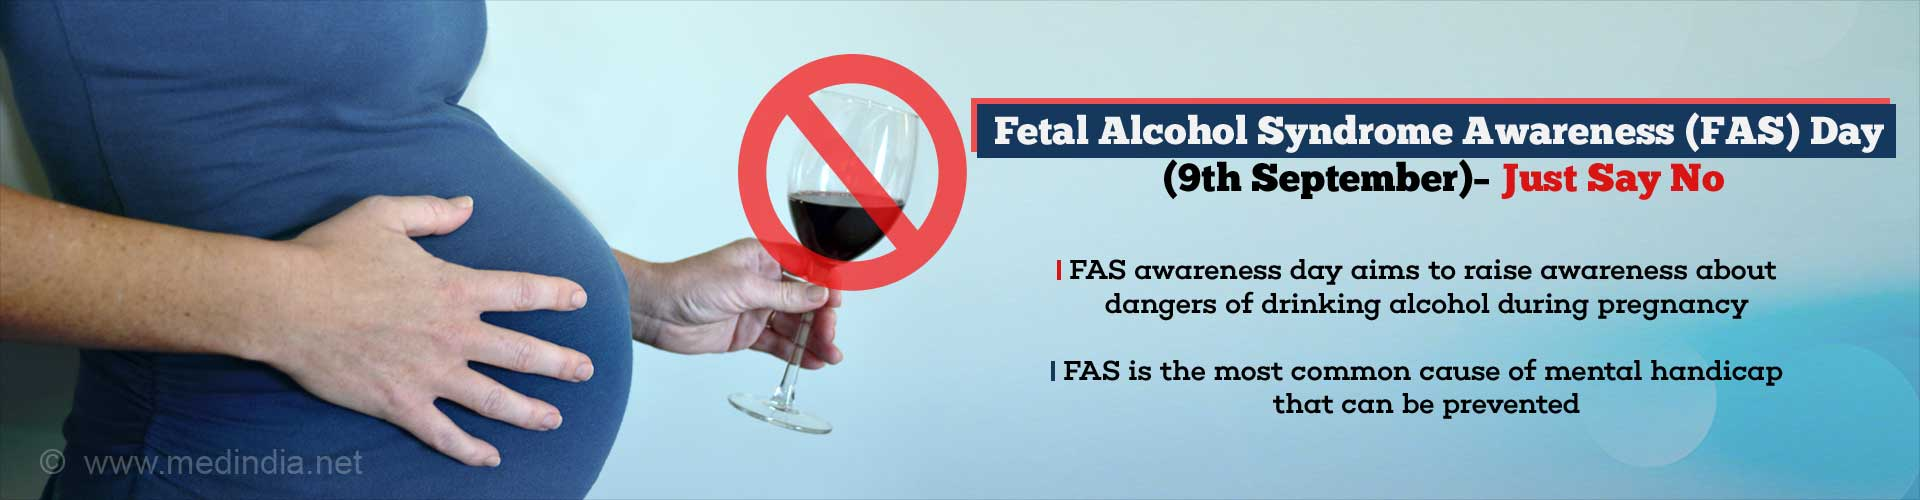 Alcohol Can Permanently Damage Your Baby's Brain - Fetal Alcohol Syndrome Awareness